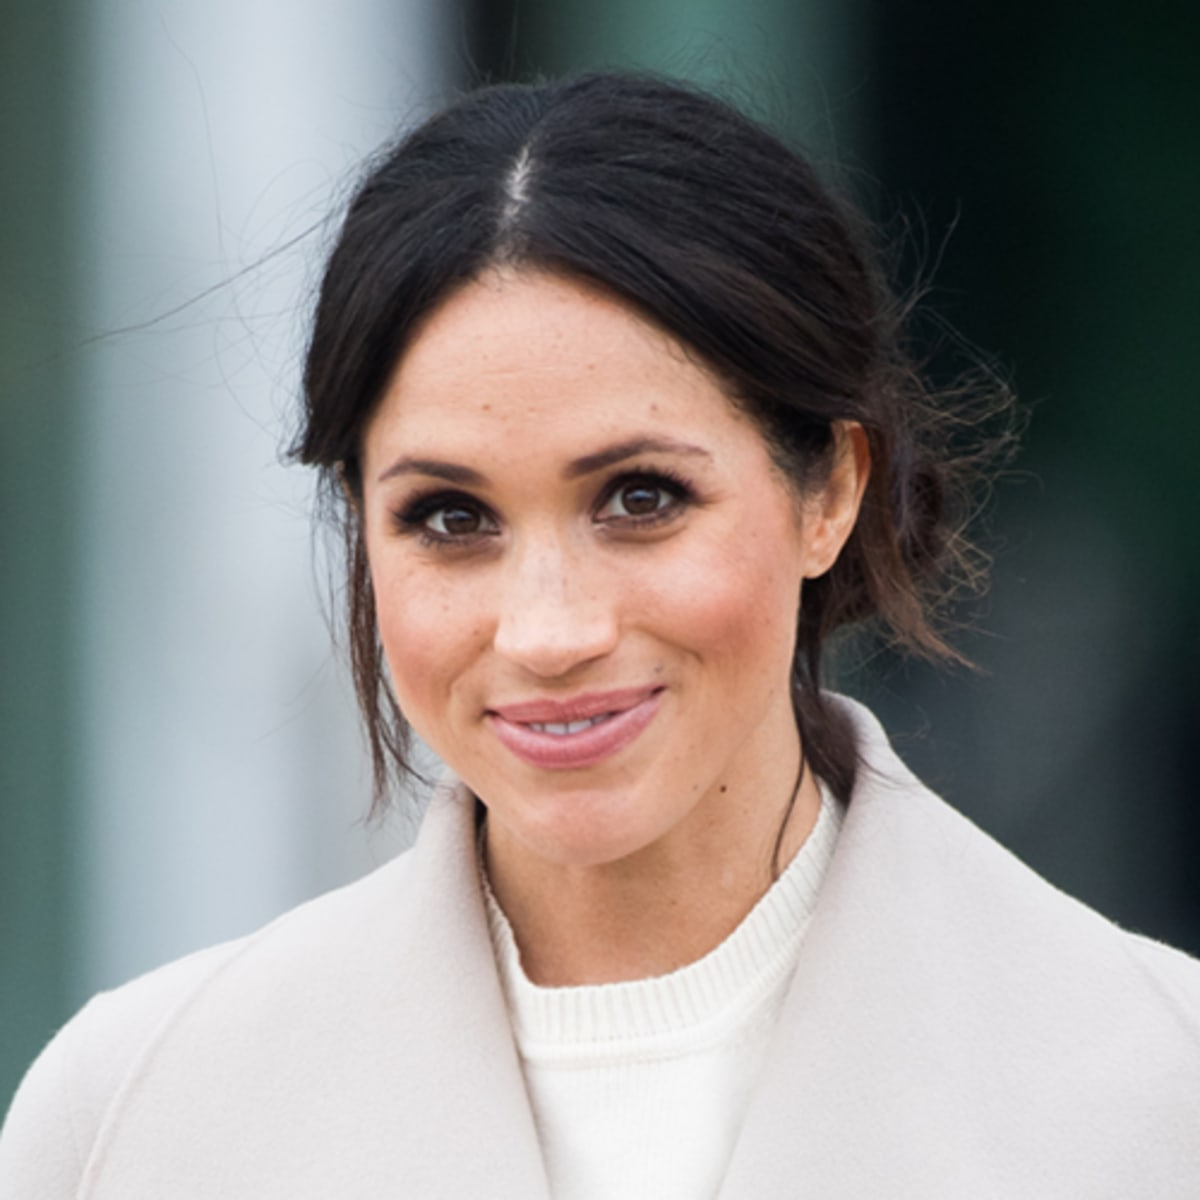 About Meghan Markle